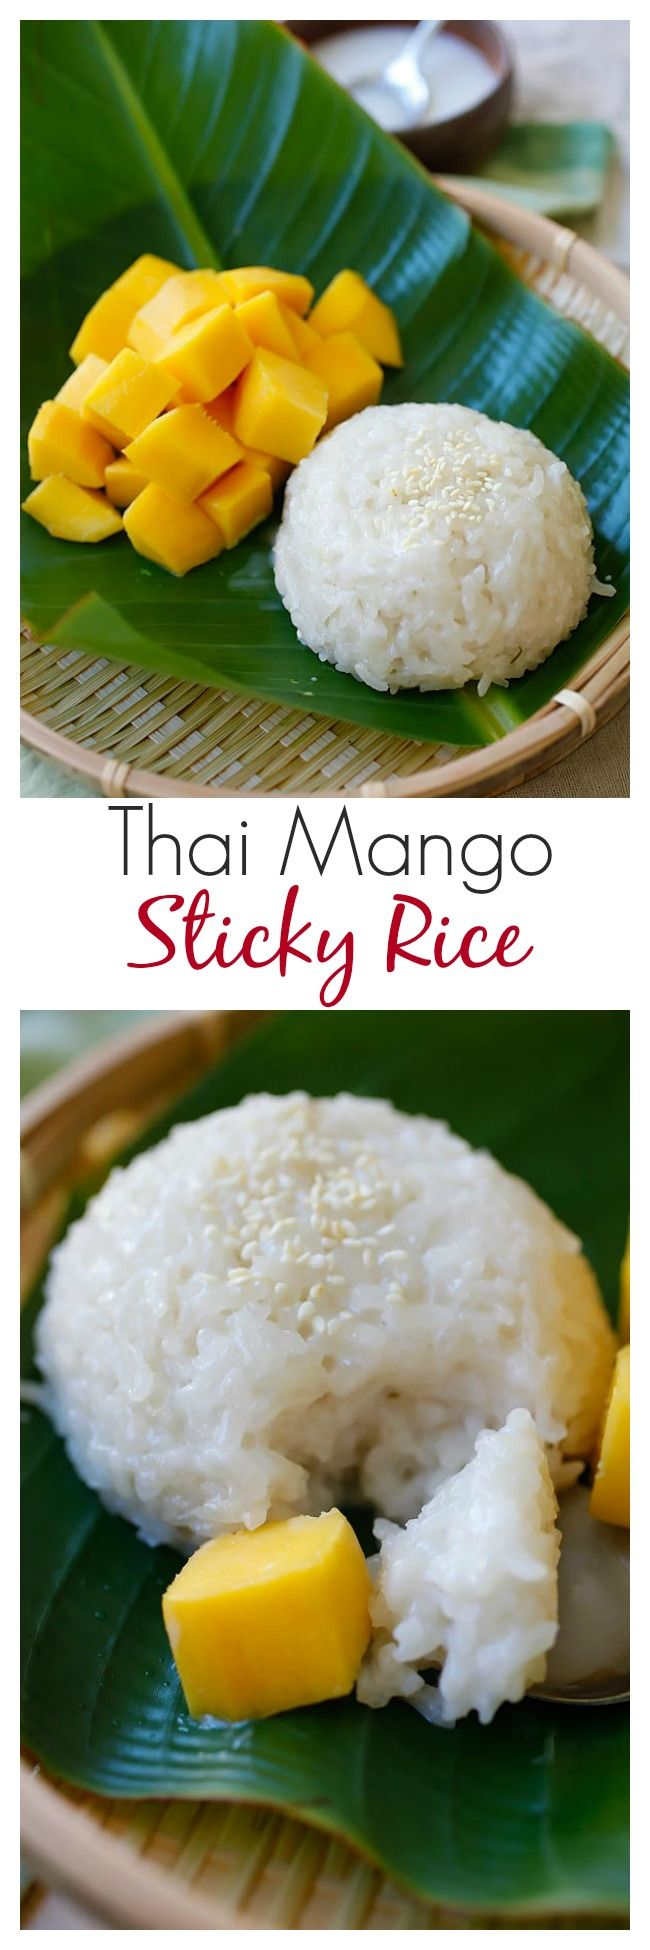 {Thailand} Mango sticky rice – a popular sweet sticky rice with coconut milk and fresh mangoes. Make your favorite Southeast Asian dessert at home | rasamalaysia.com